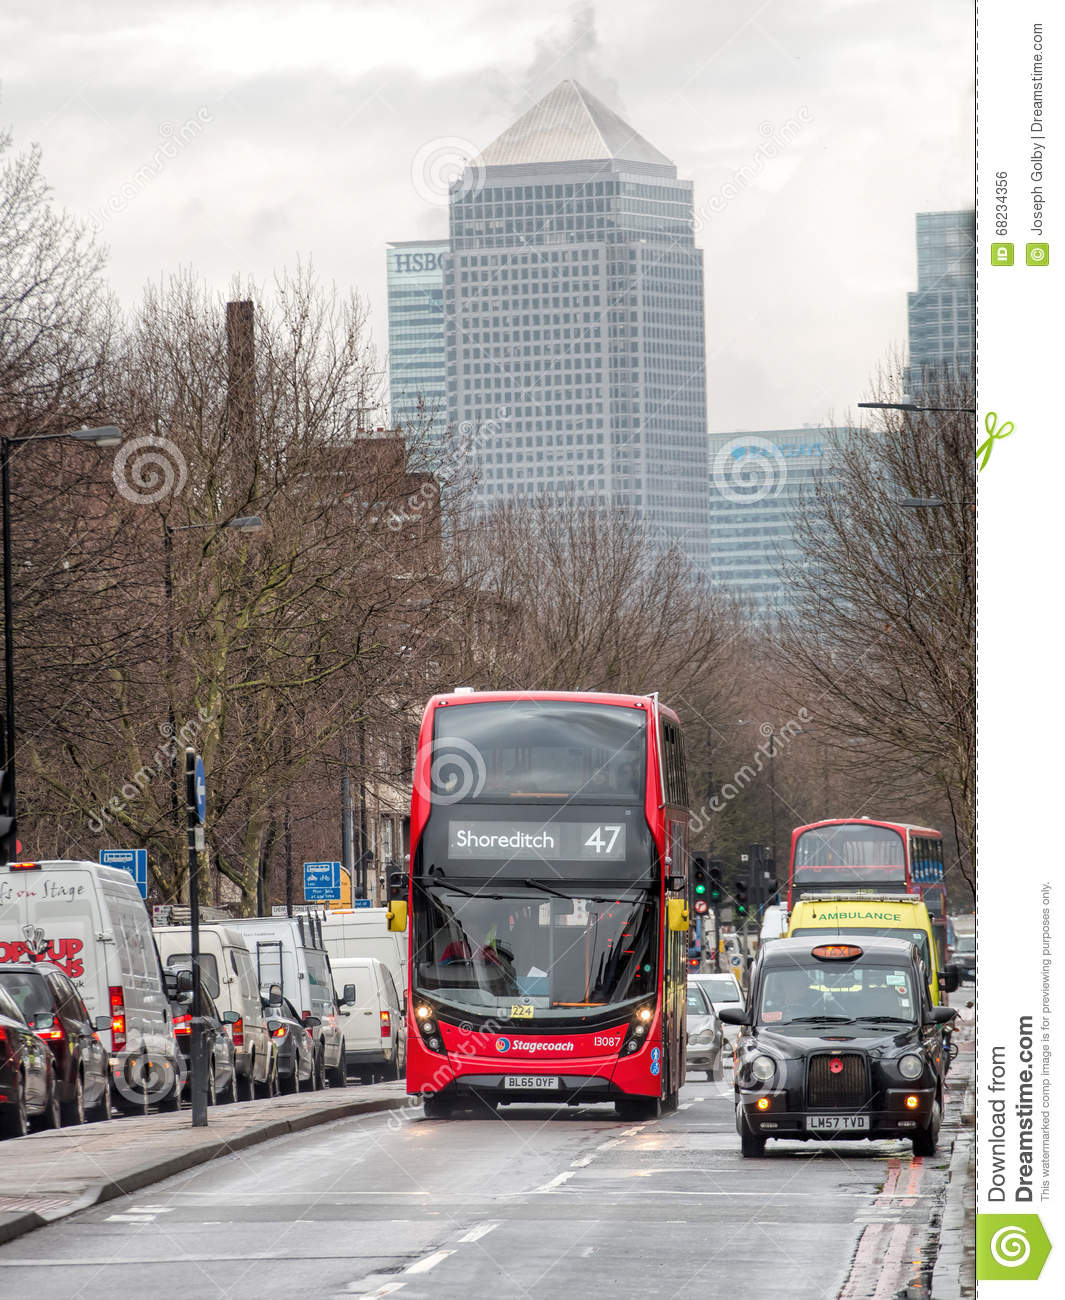 London Bus And Black Cab At Rush Hour. Canary Wharf Background